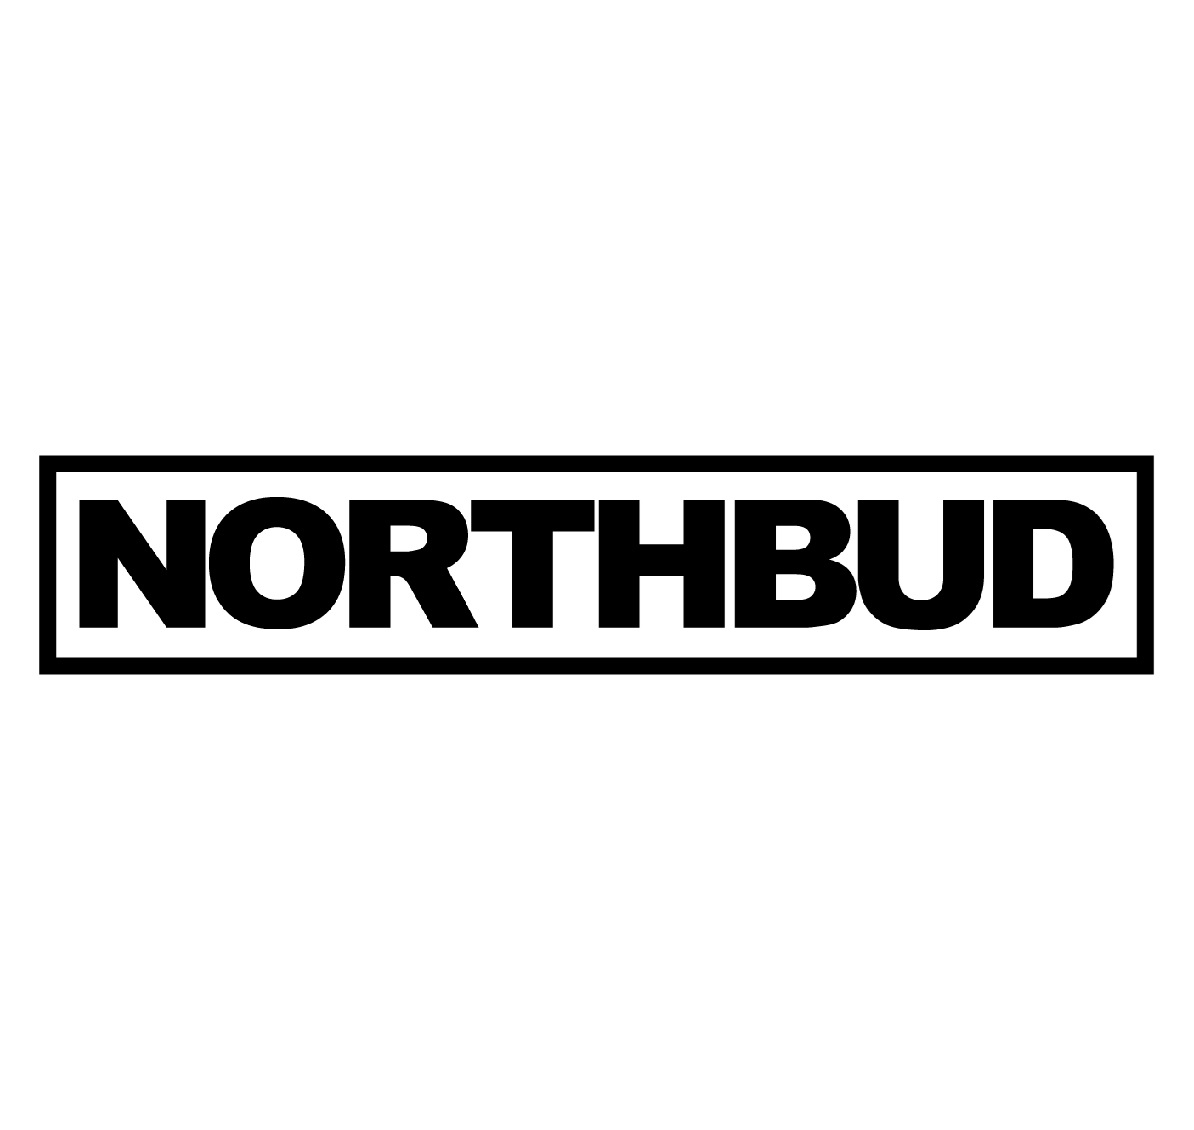 North Bud Farms Announces Name Change and Provides U.S